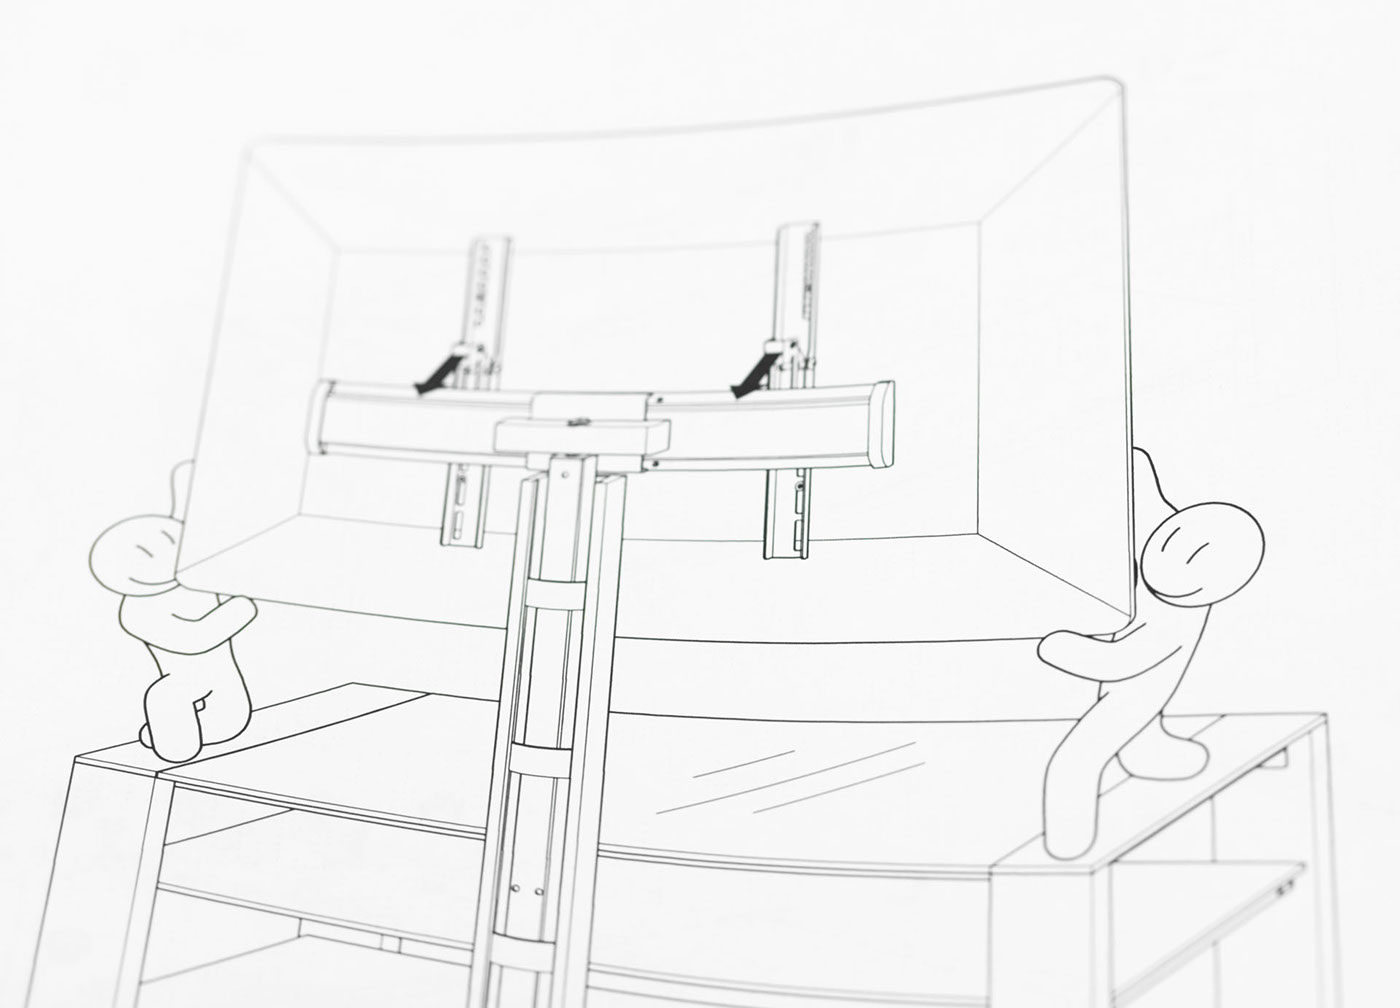 Assembly instructions for Alteza TV tables and racks on